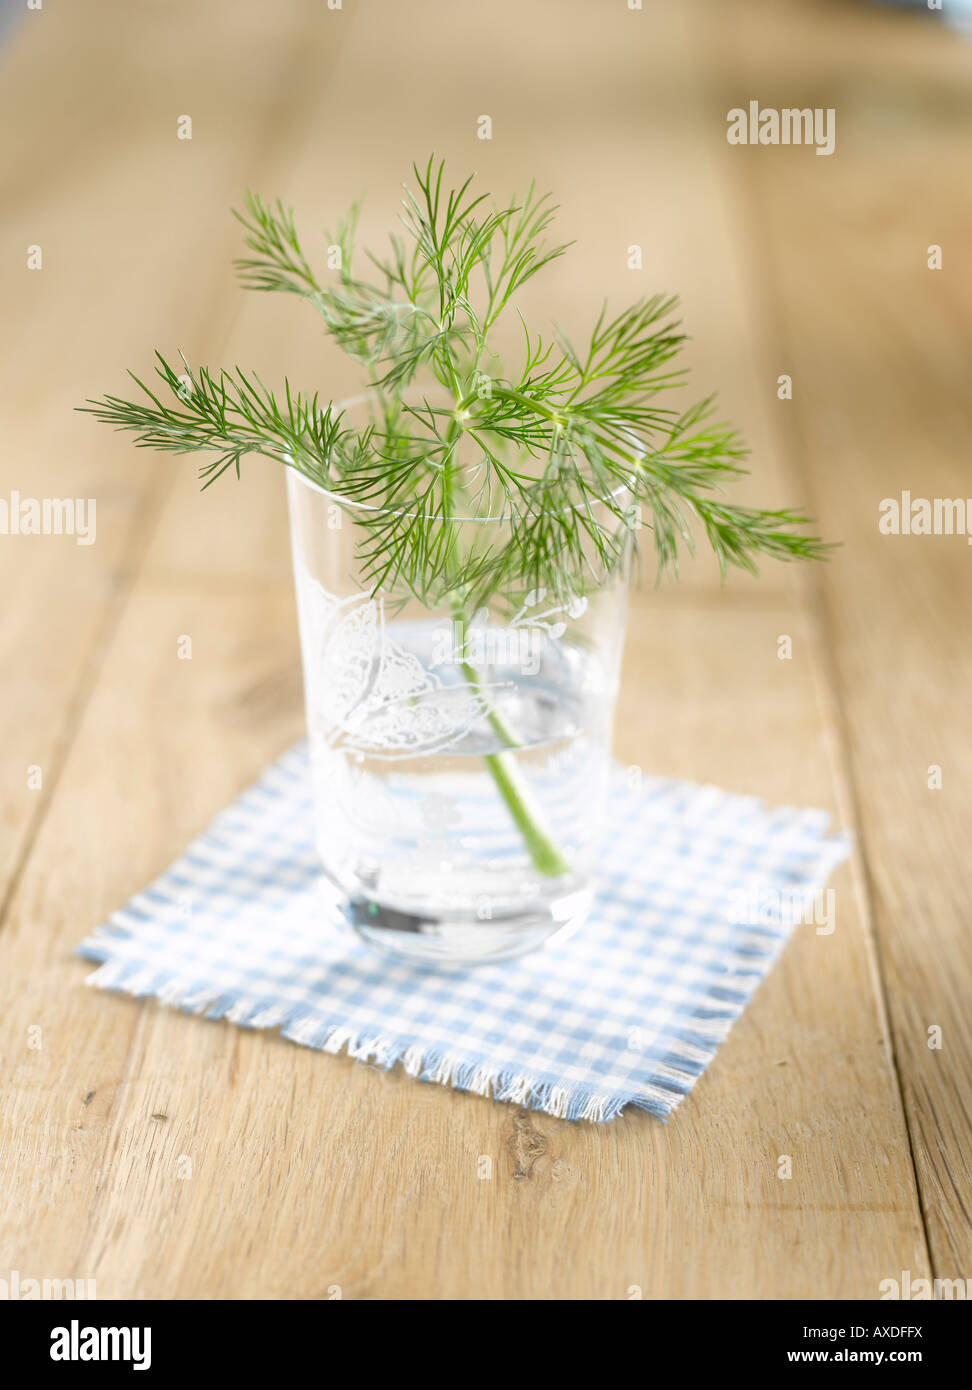 Dill in water glass (Anethum graveolens) - Stock Image